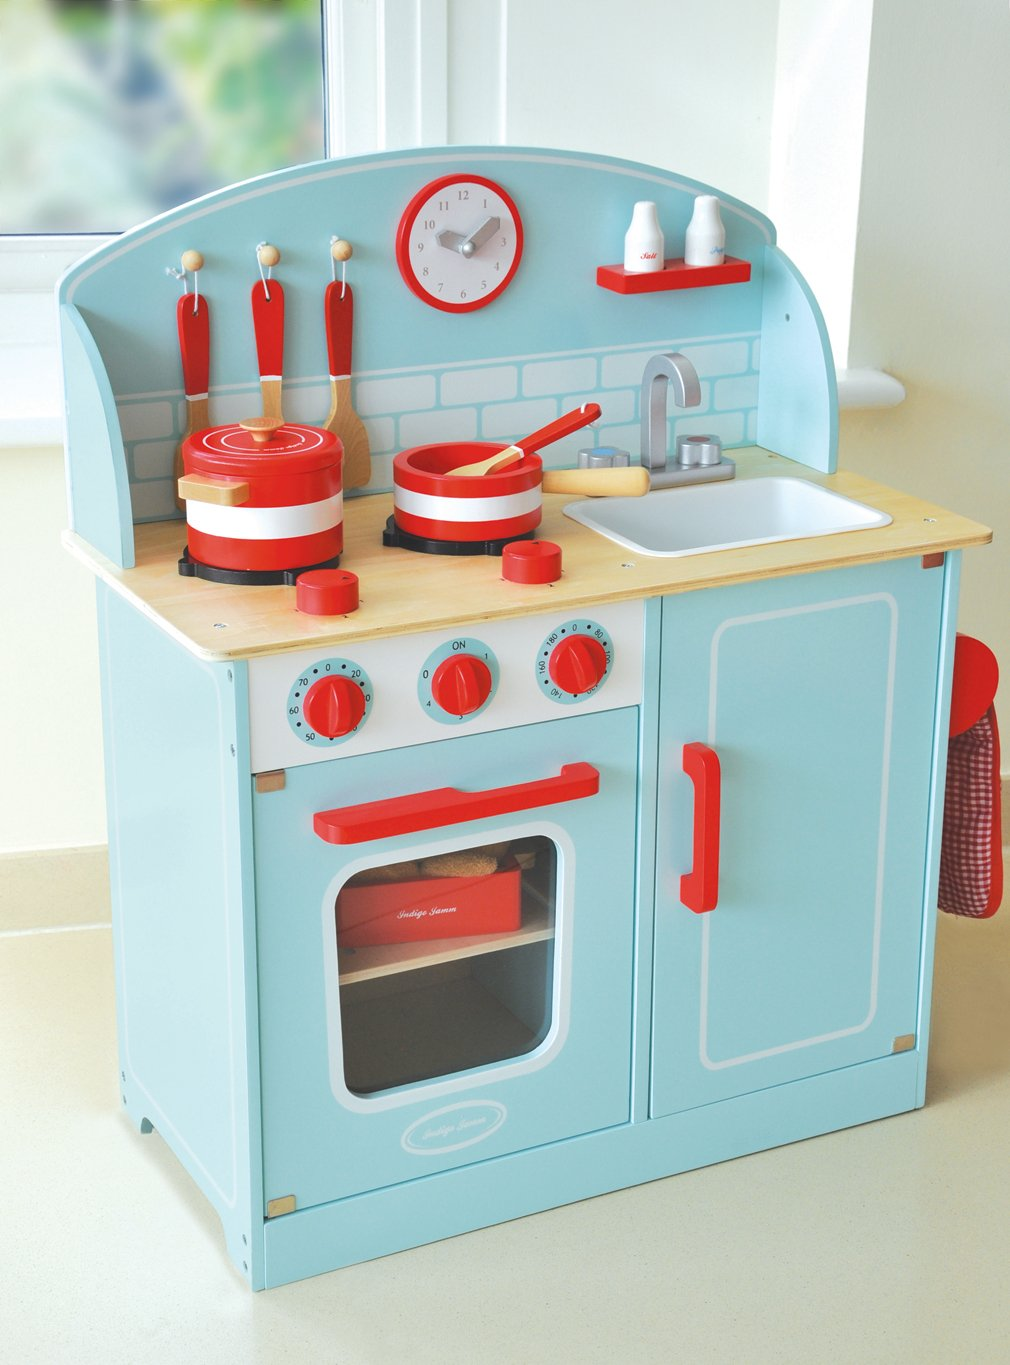 Amazon.com: Indigo Jamm Blue Lynton Kitchen Playset KIJ10056: Toys ...